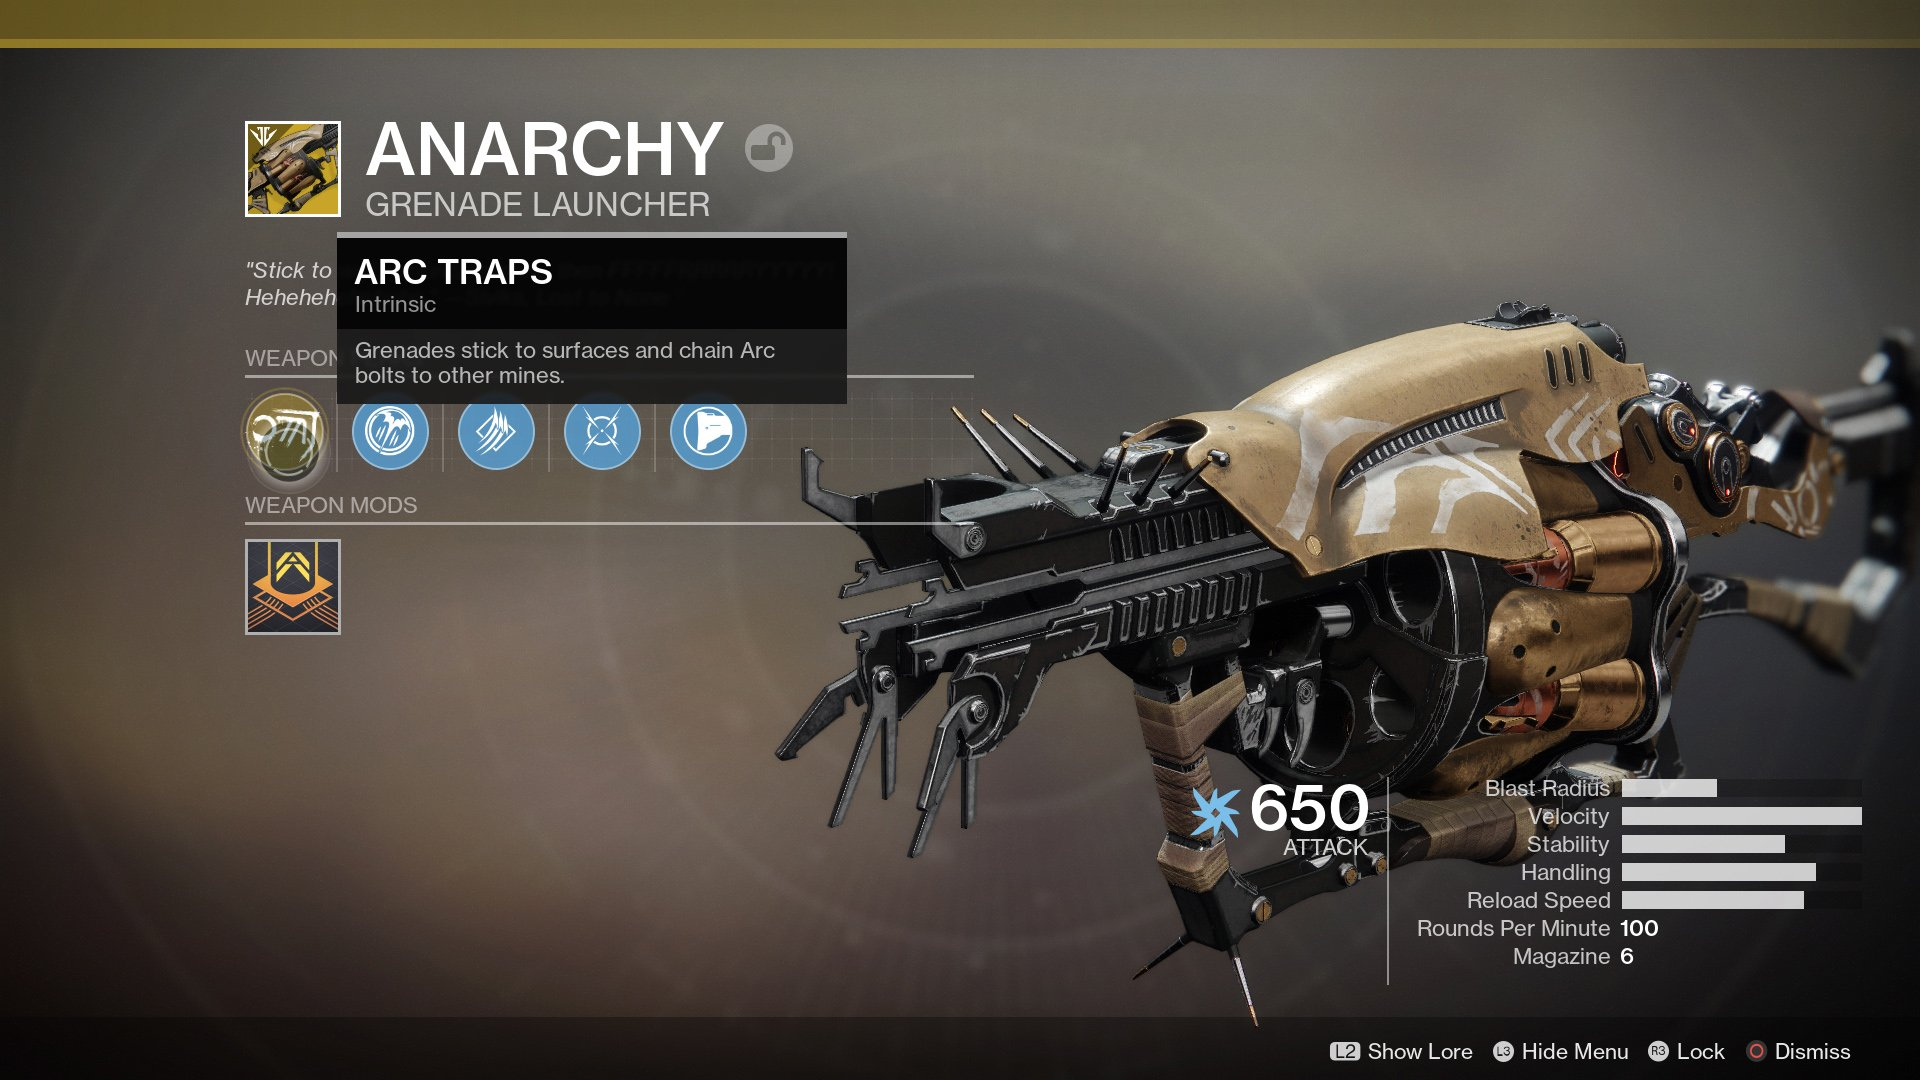 How to get the Anarchy Exotic grenade launcher in Destiny 2